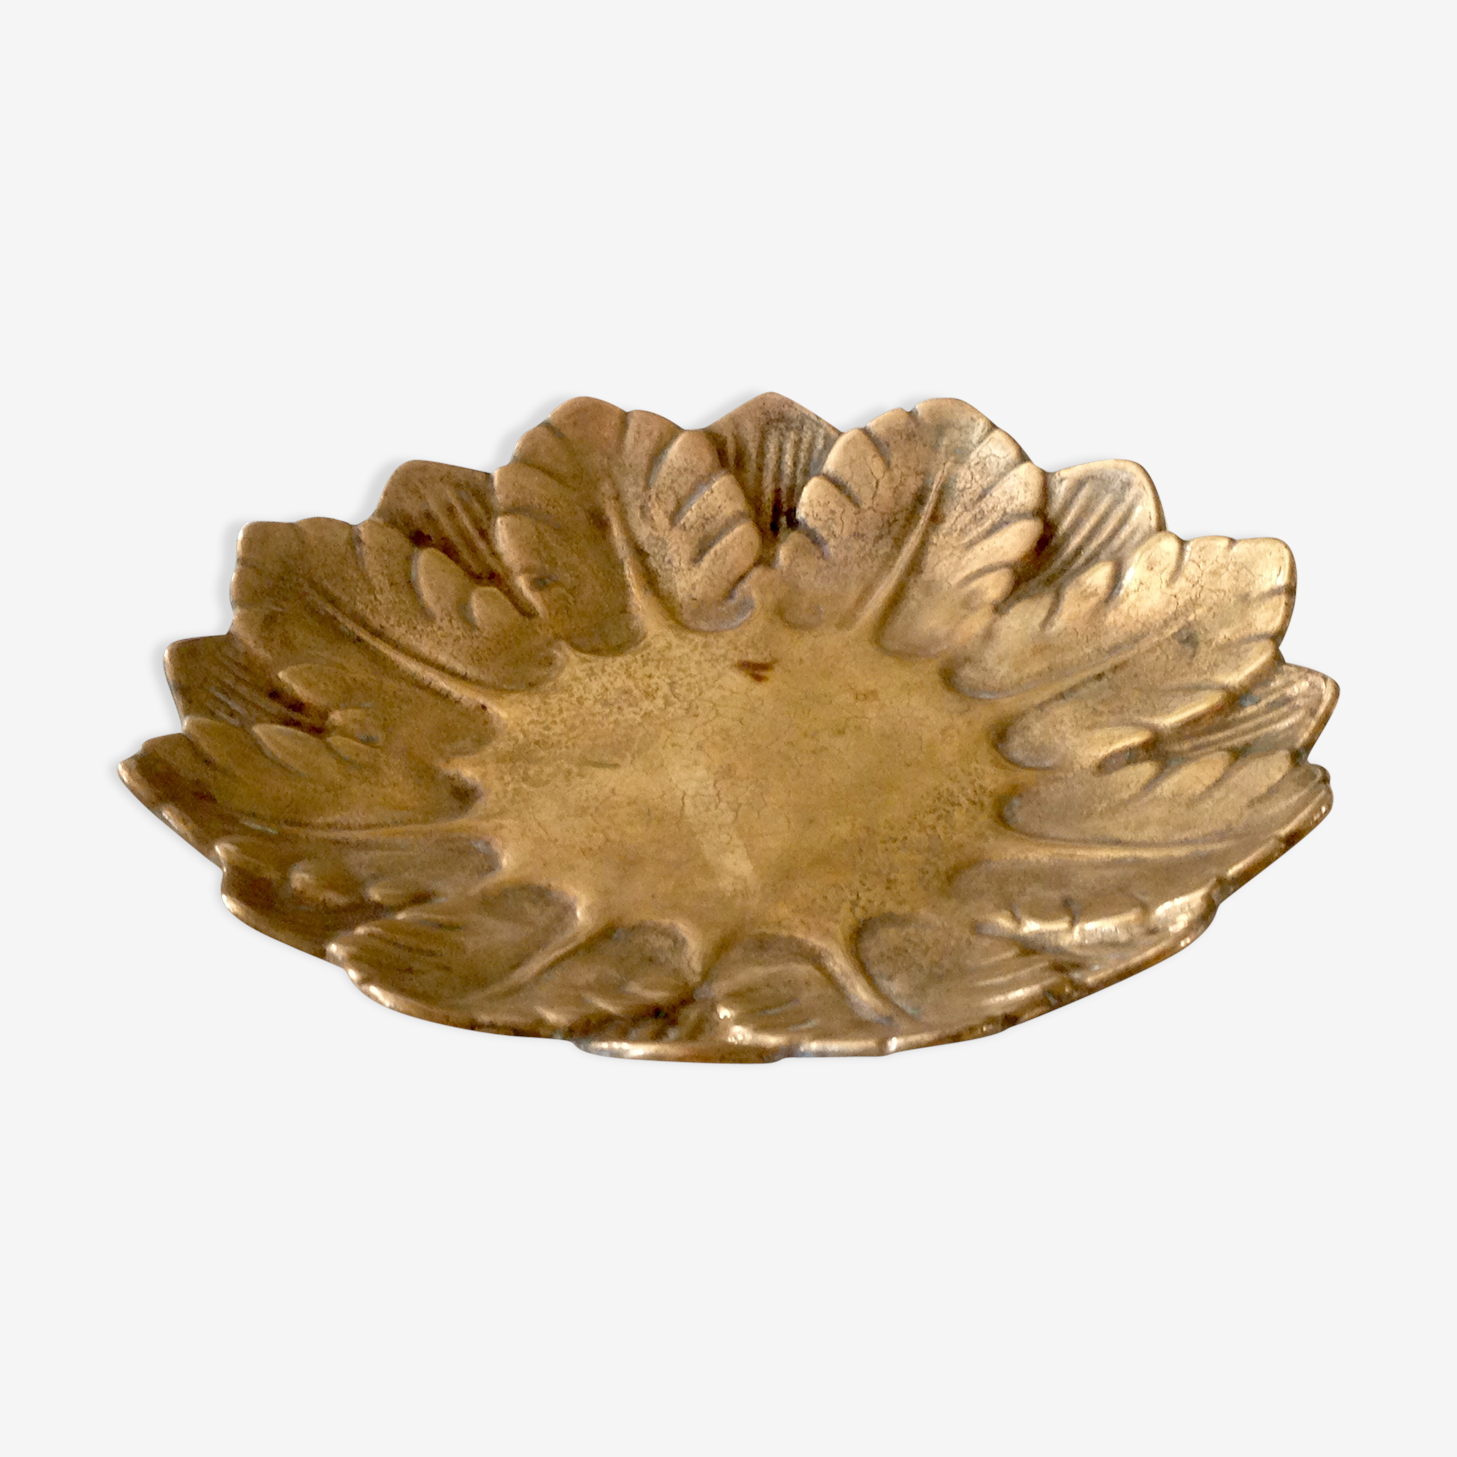 Trinket bowl in brass